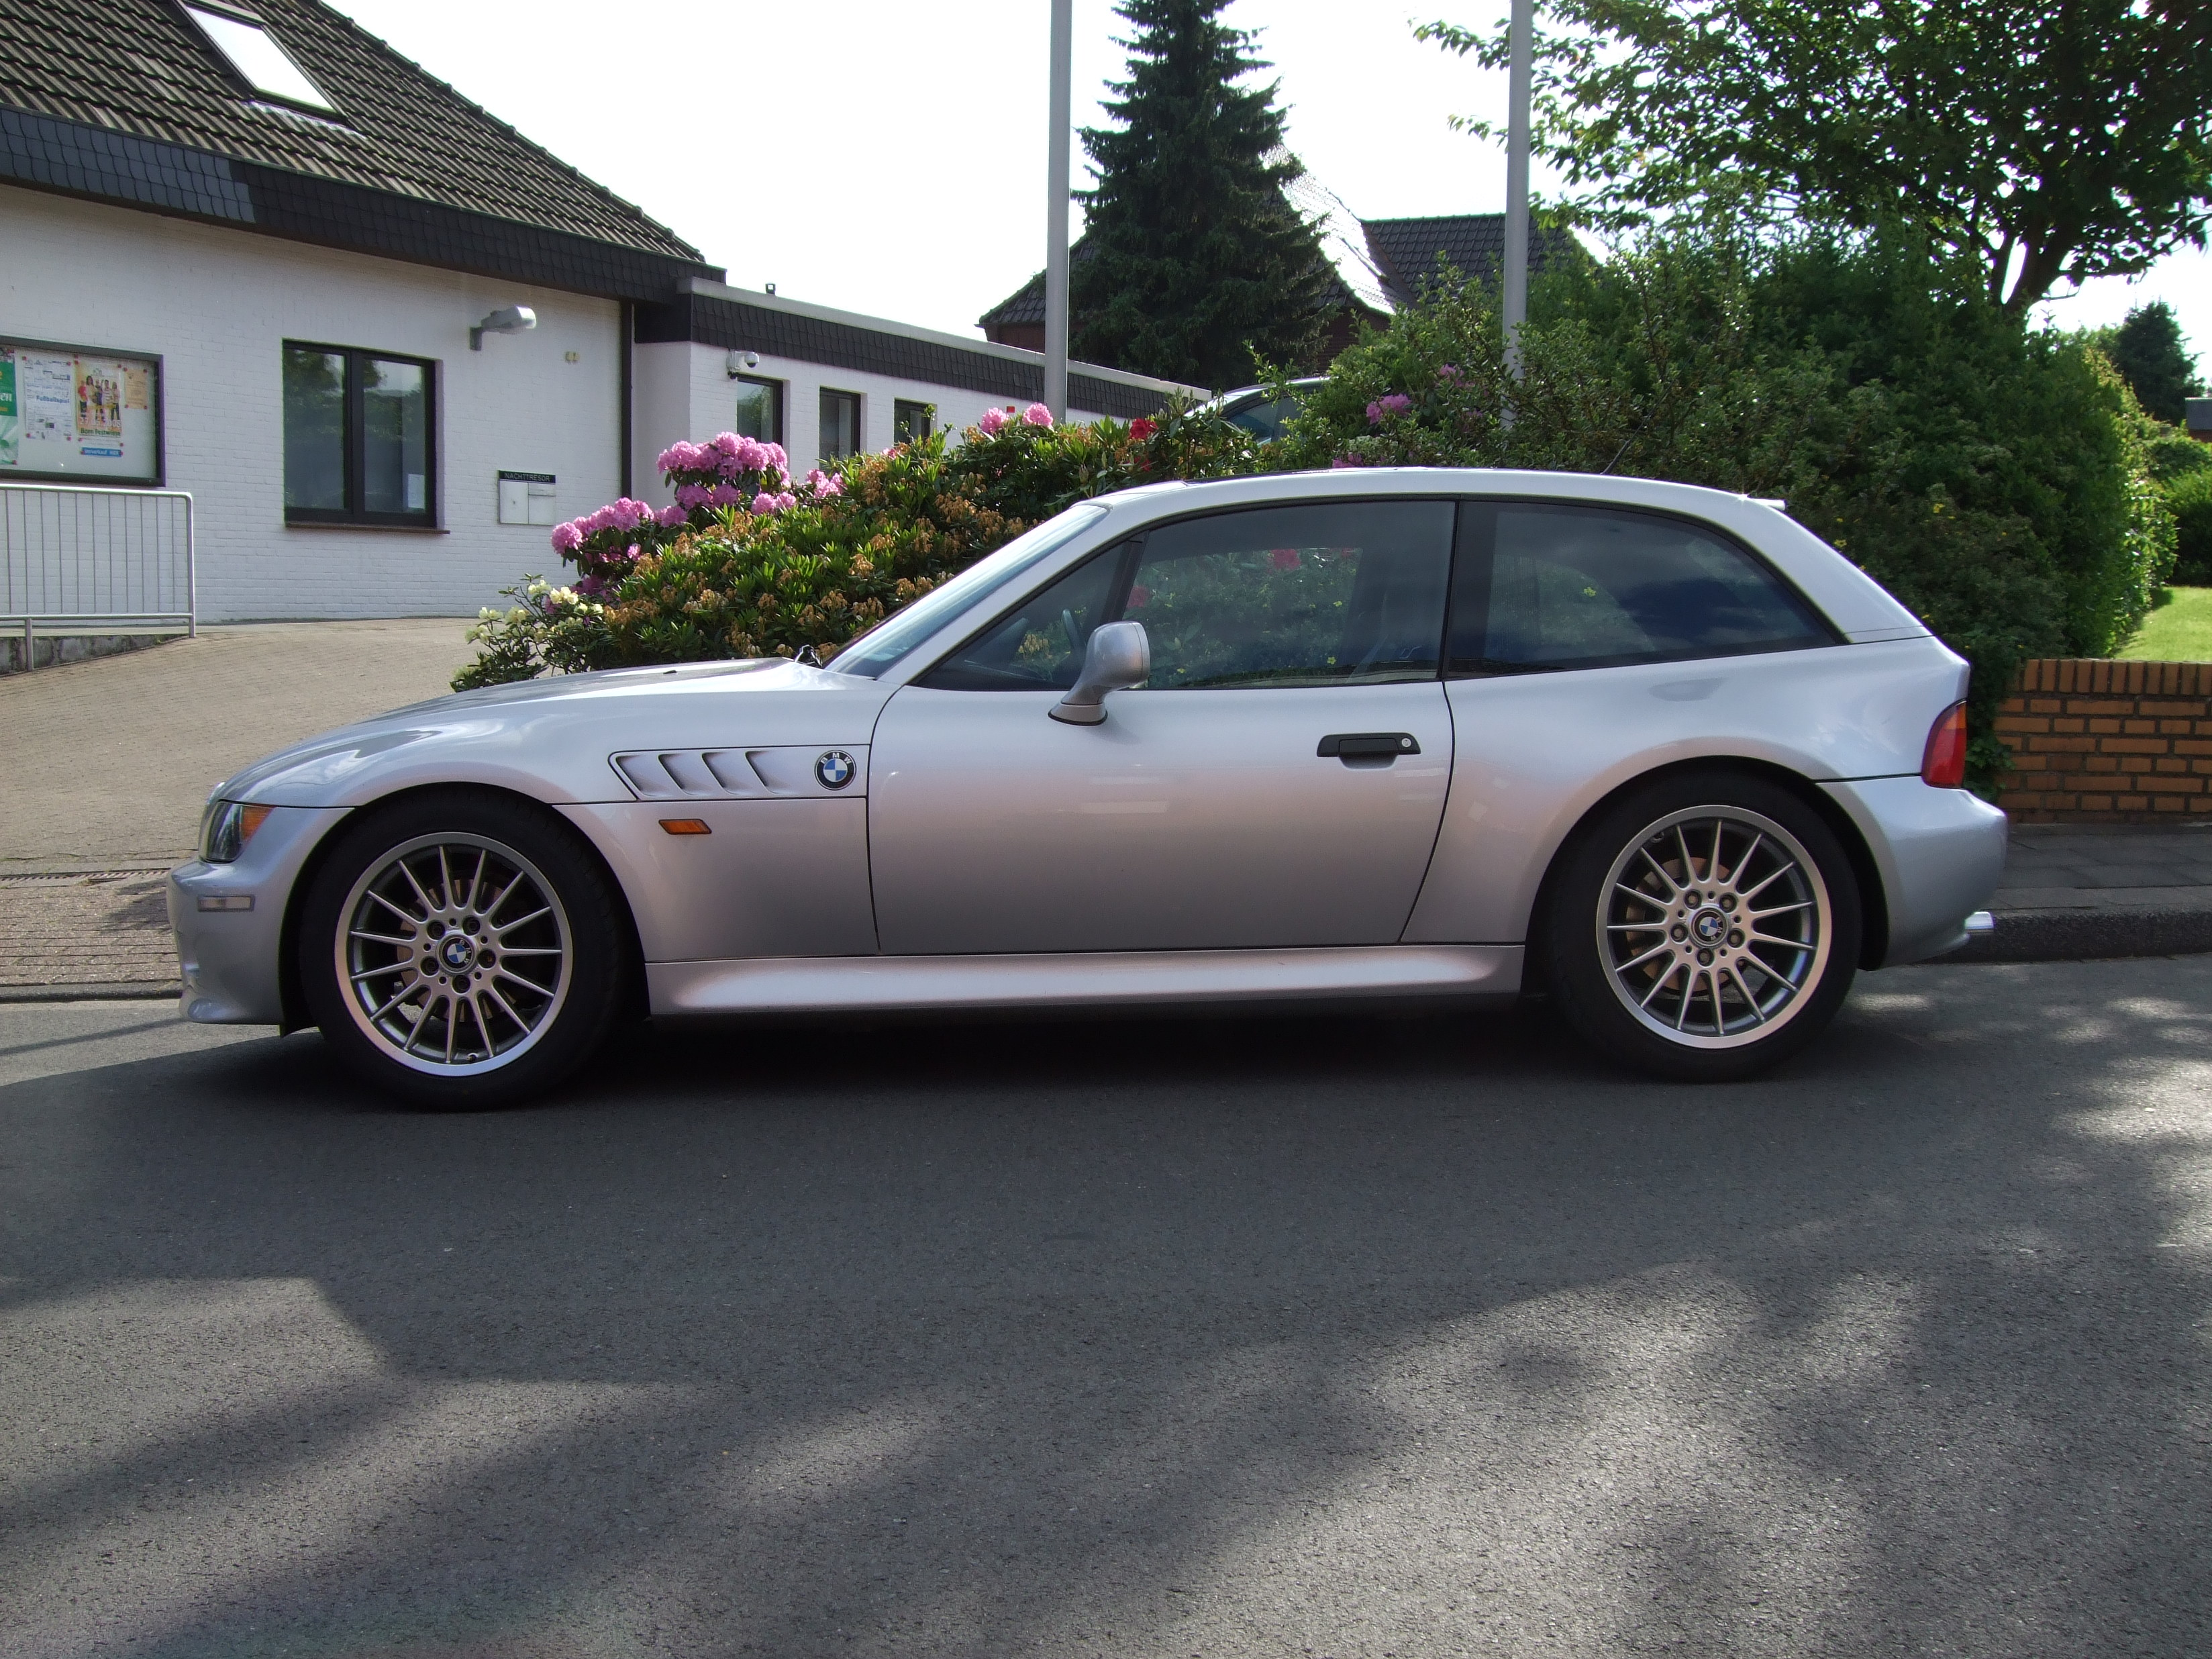 1998 Bmw Z3 m coupe - pictures, information and specs ...